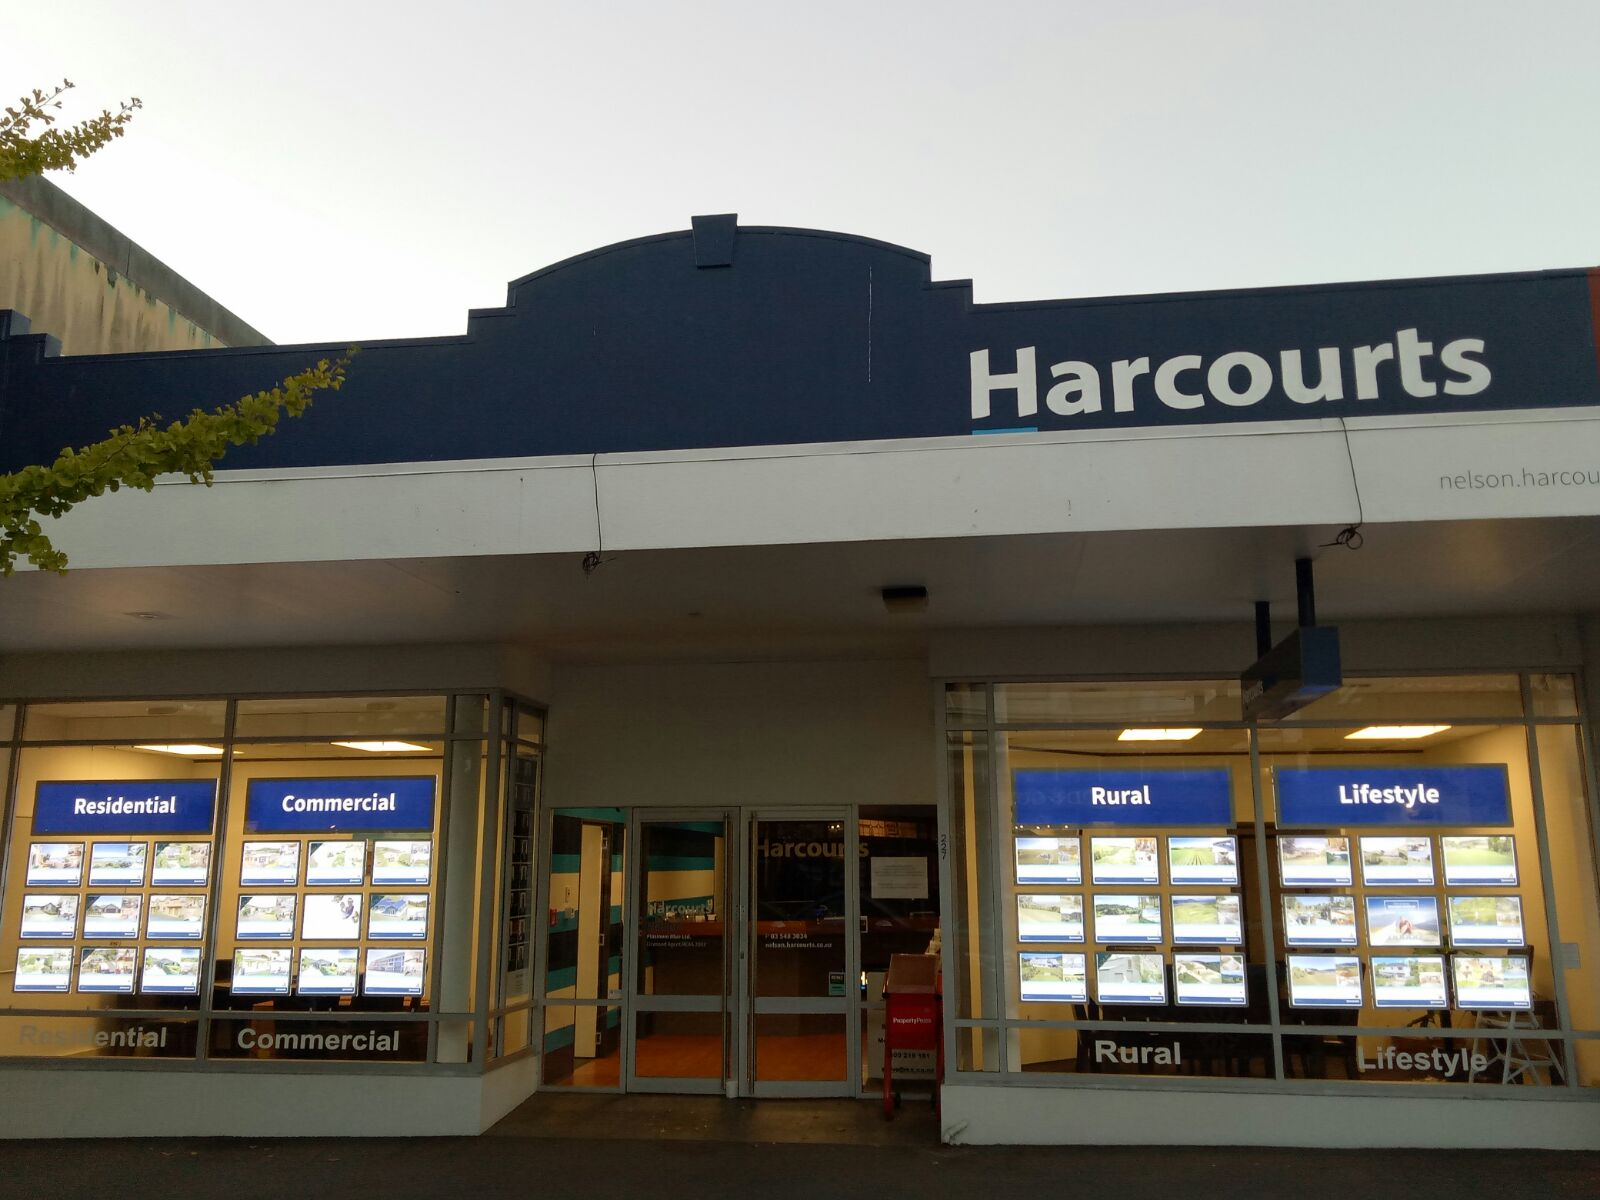 The Harcourts Nelson shopfront following the installation of the VitrineMedia screens.